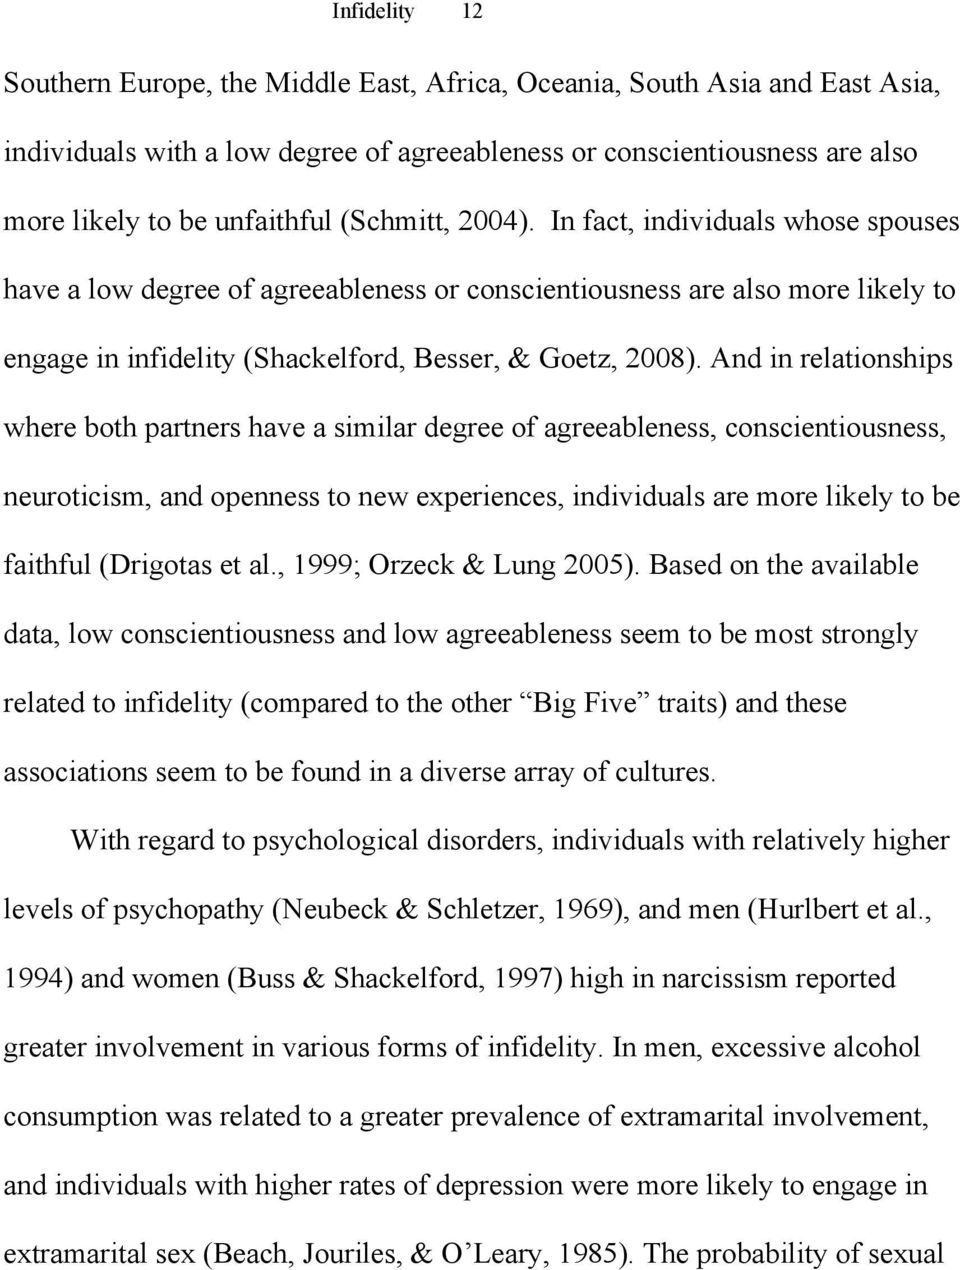 And in relationships where both partners have a similar degree of agreeableness, conscientiousness, neuroticism, and openness to new experiences, individuals are more likely to be faithful (Drigotas